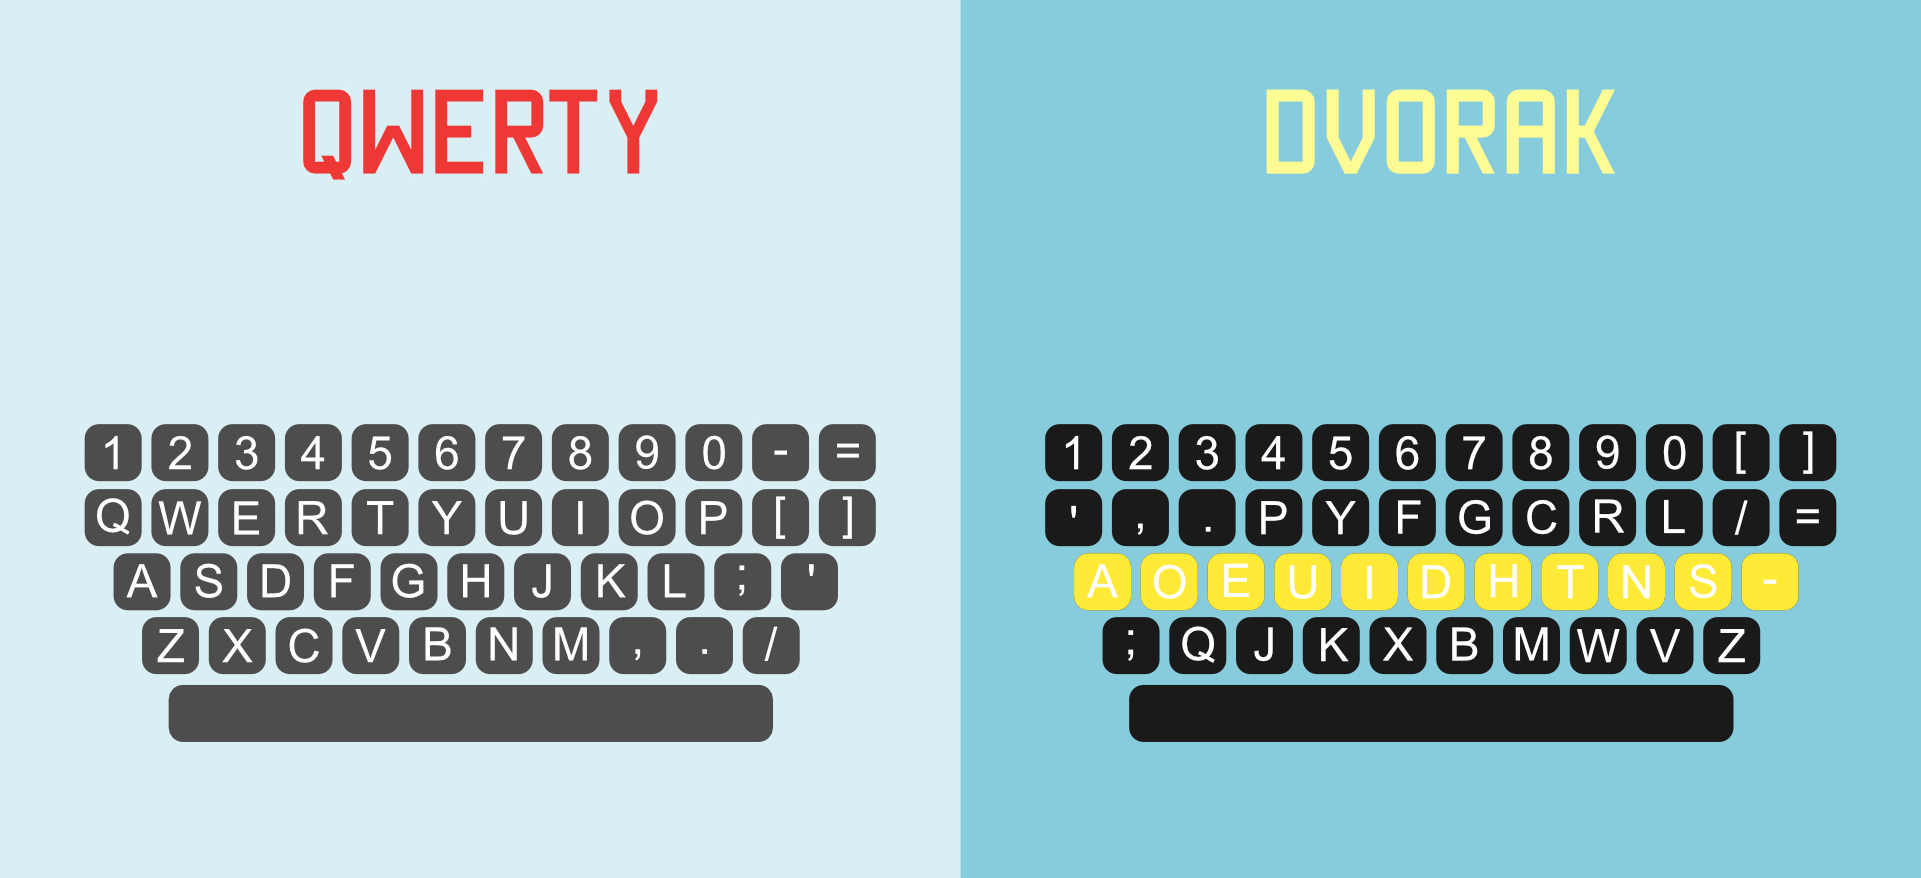 QWERTY vs DVORAK layout